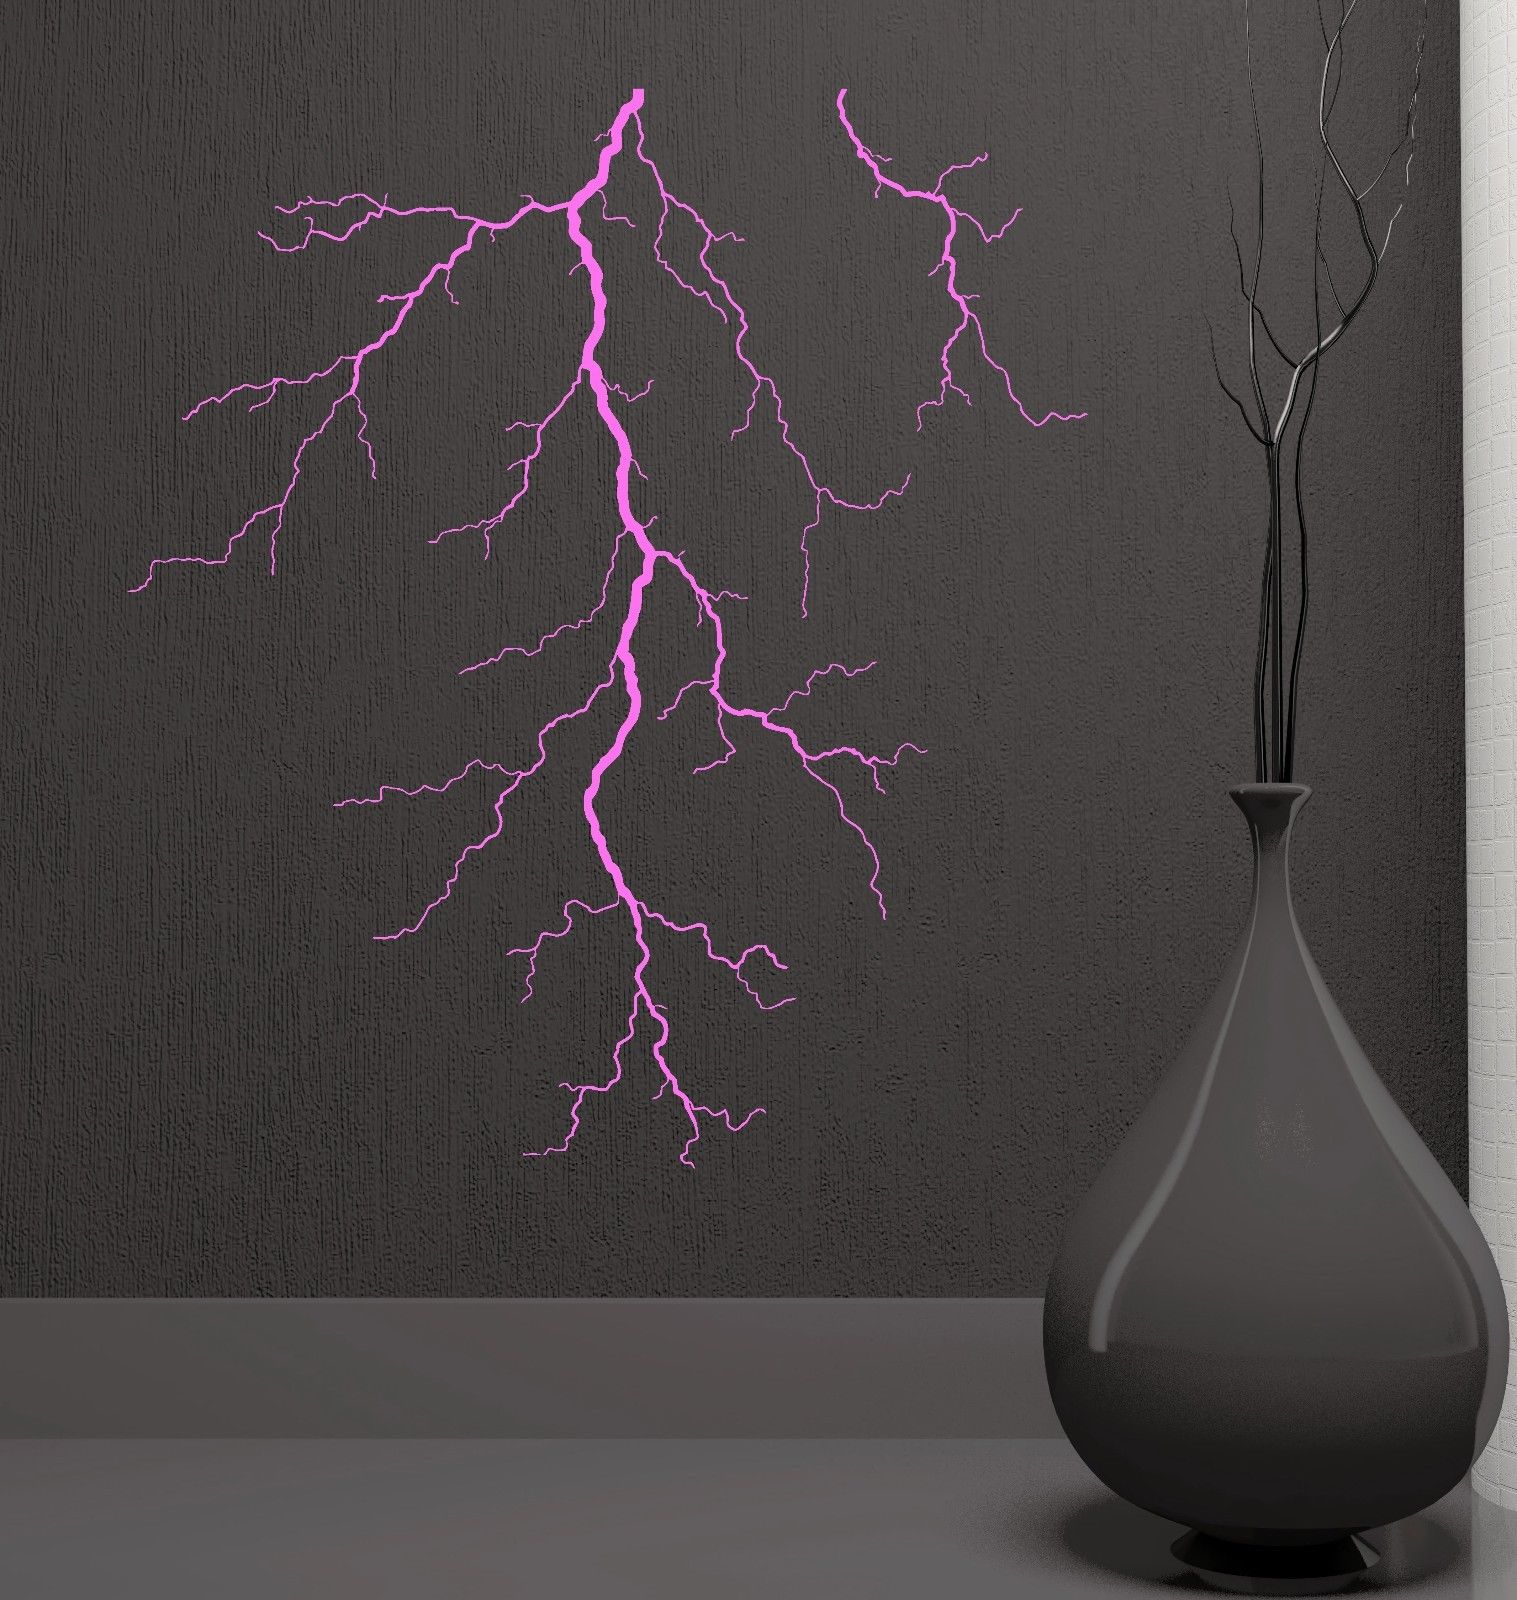 wall decal family art bedroom decor new wall decal lightning crack beautiful room decor art vinyl stickers free shipping